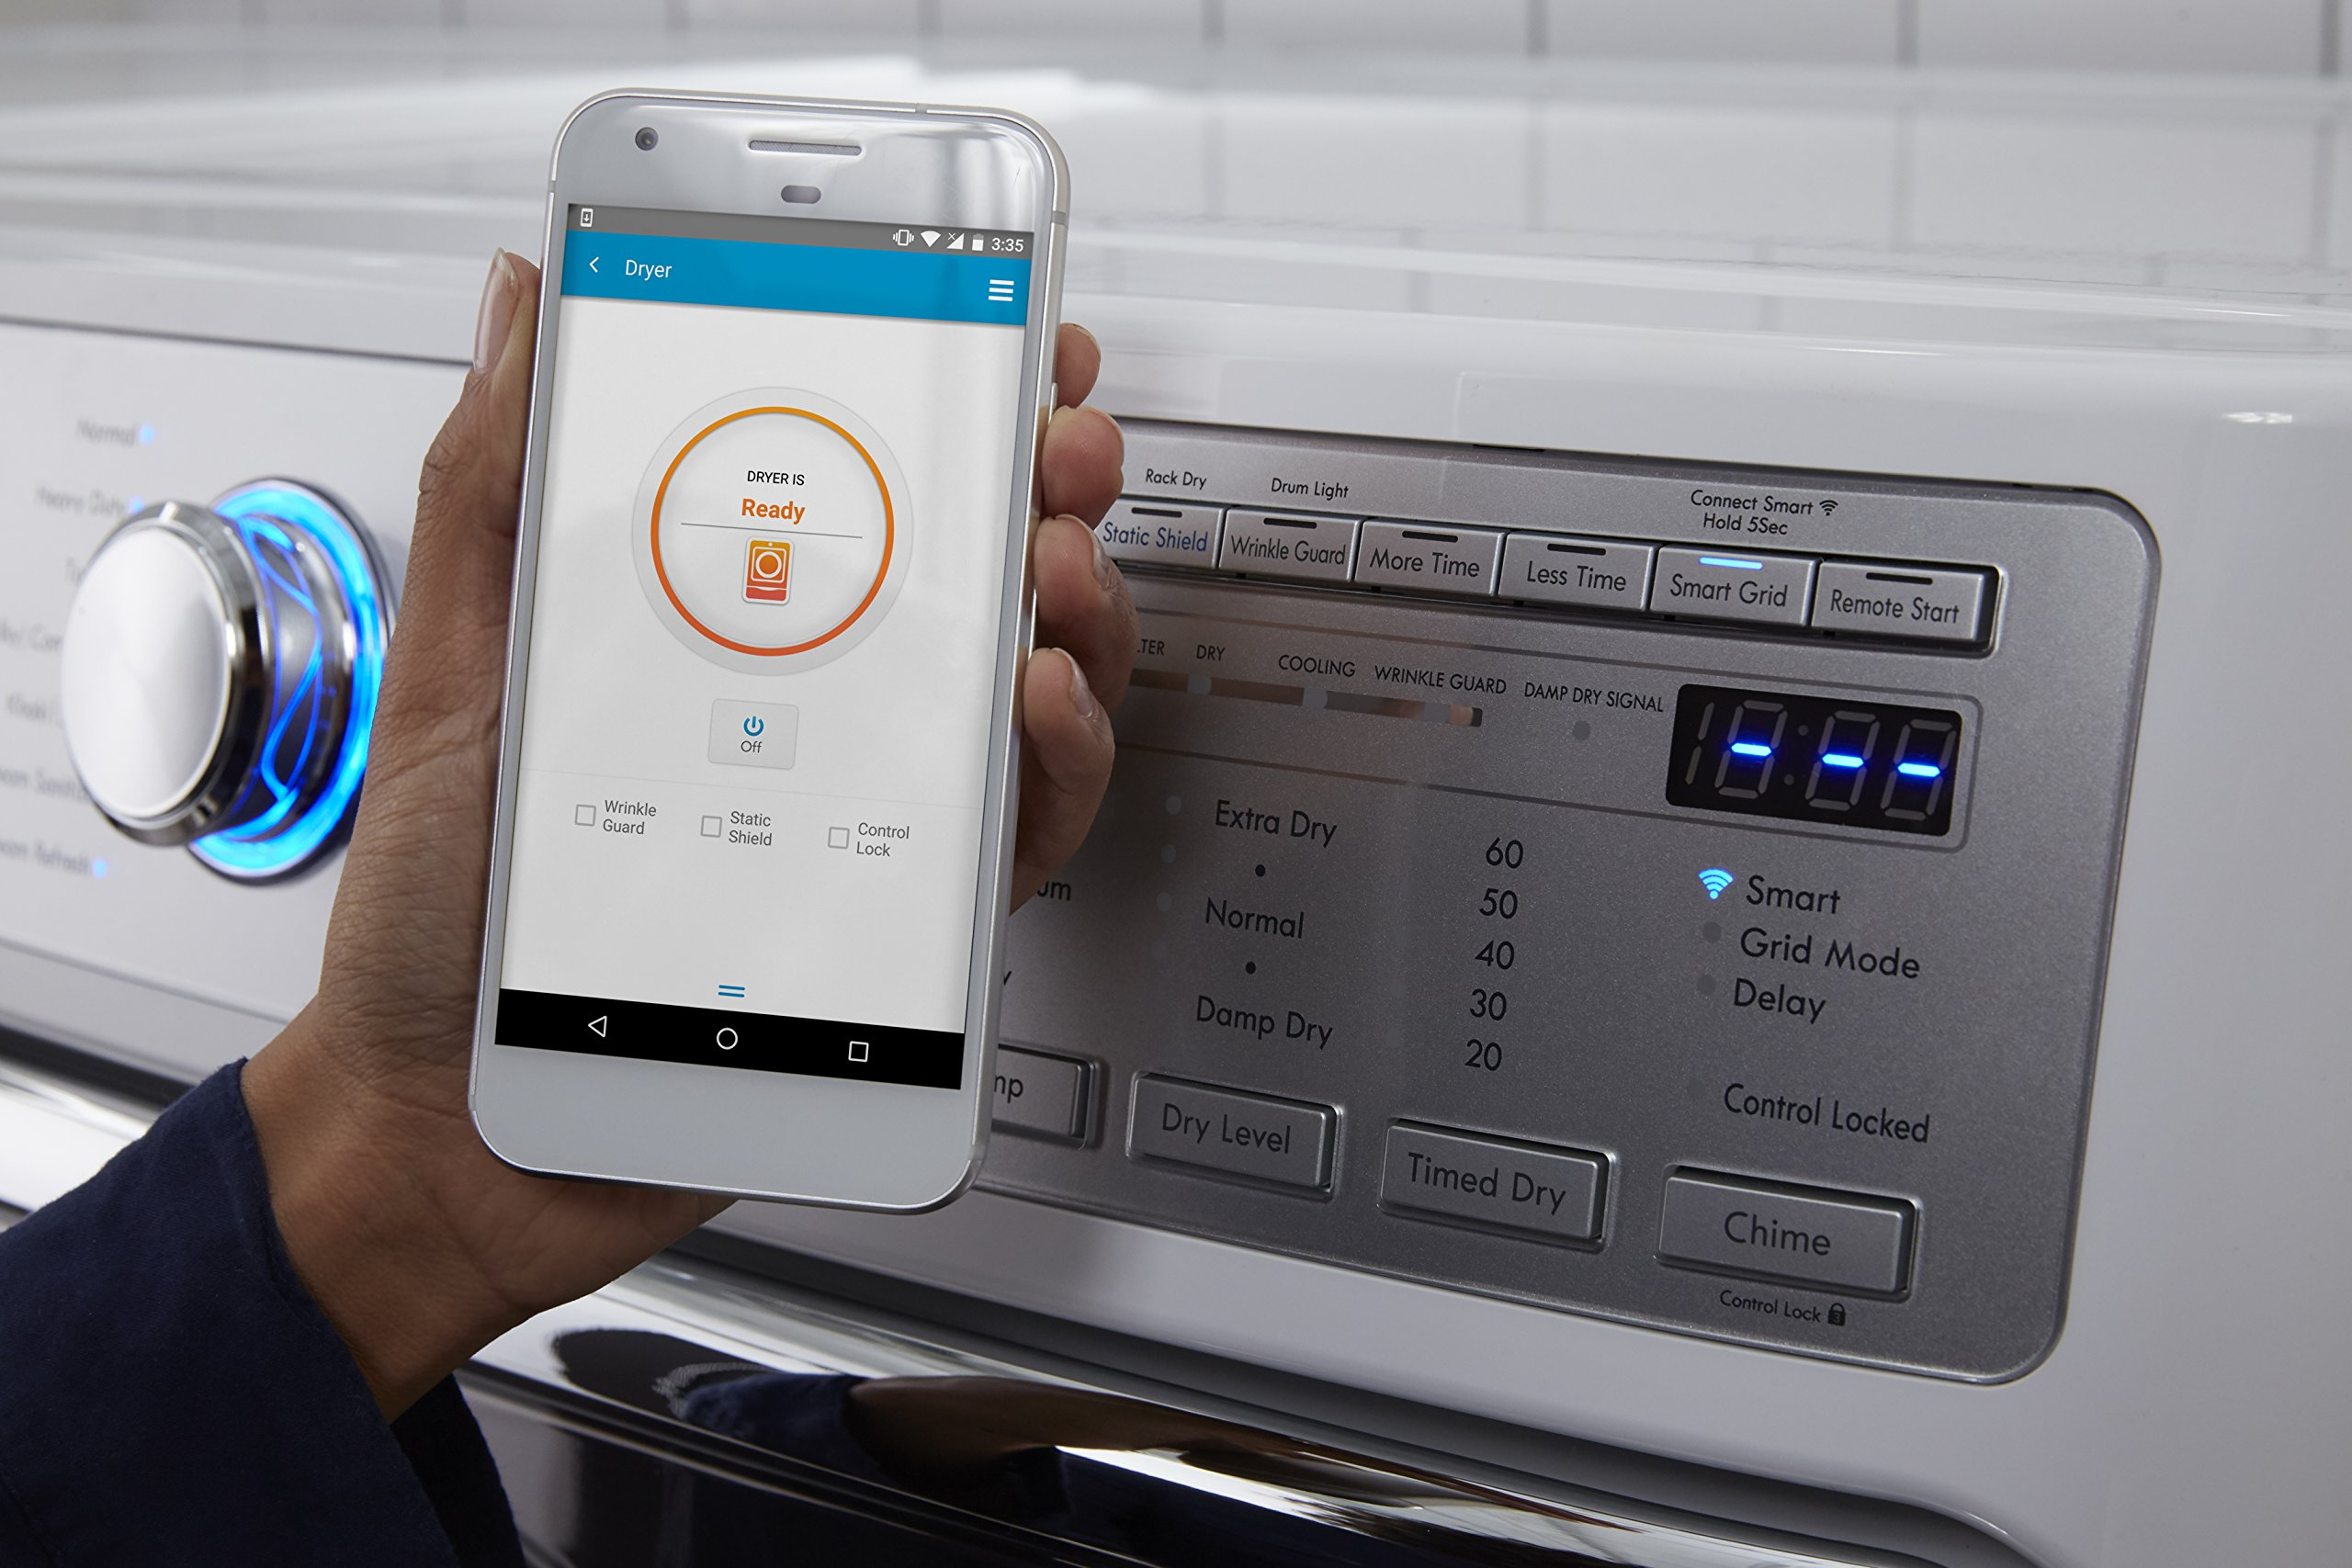 Kenmore Smart 91982 9.0 cu. ft. Gas Dryer with Accela Steam Technology in White - Compatible with Amazon Alexa, includes delivery and hookup (Available in select cities only) by Kenmore (Image #5)